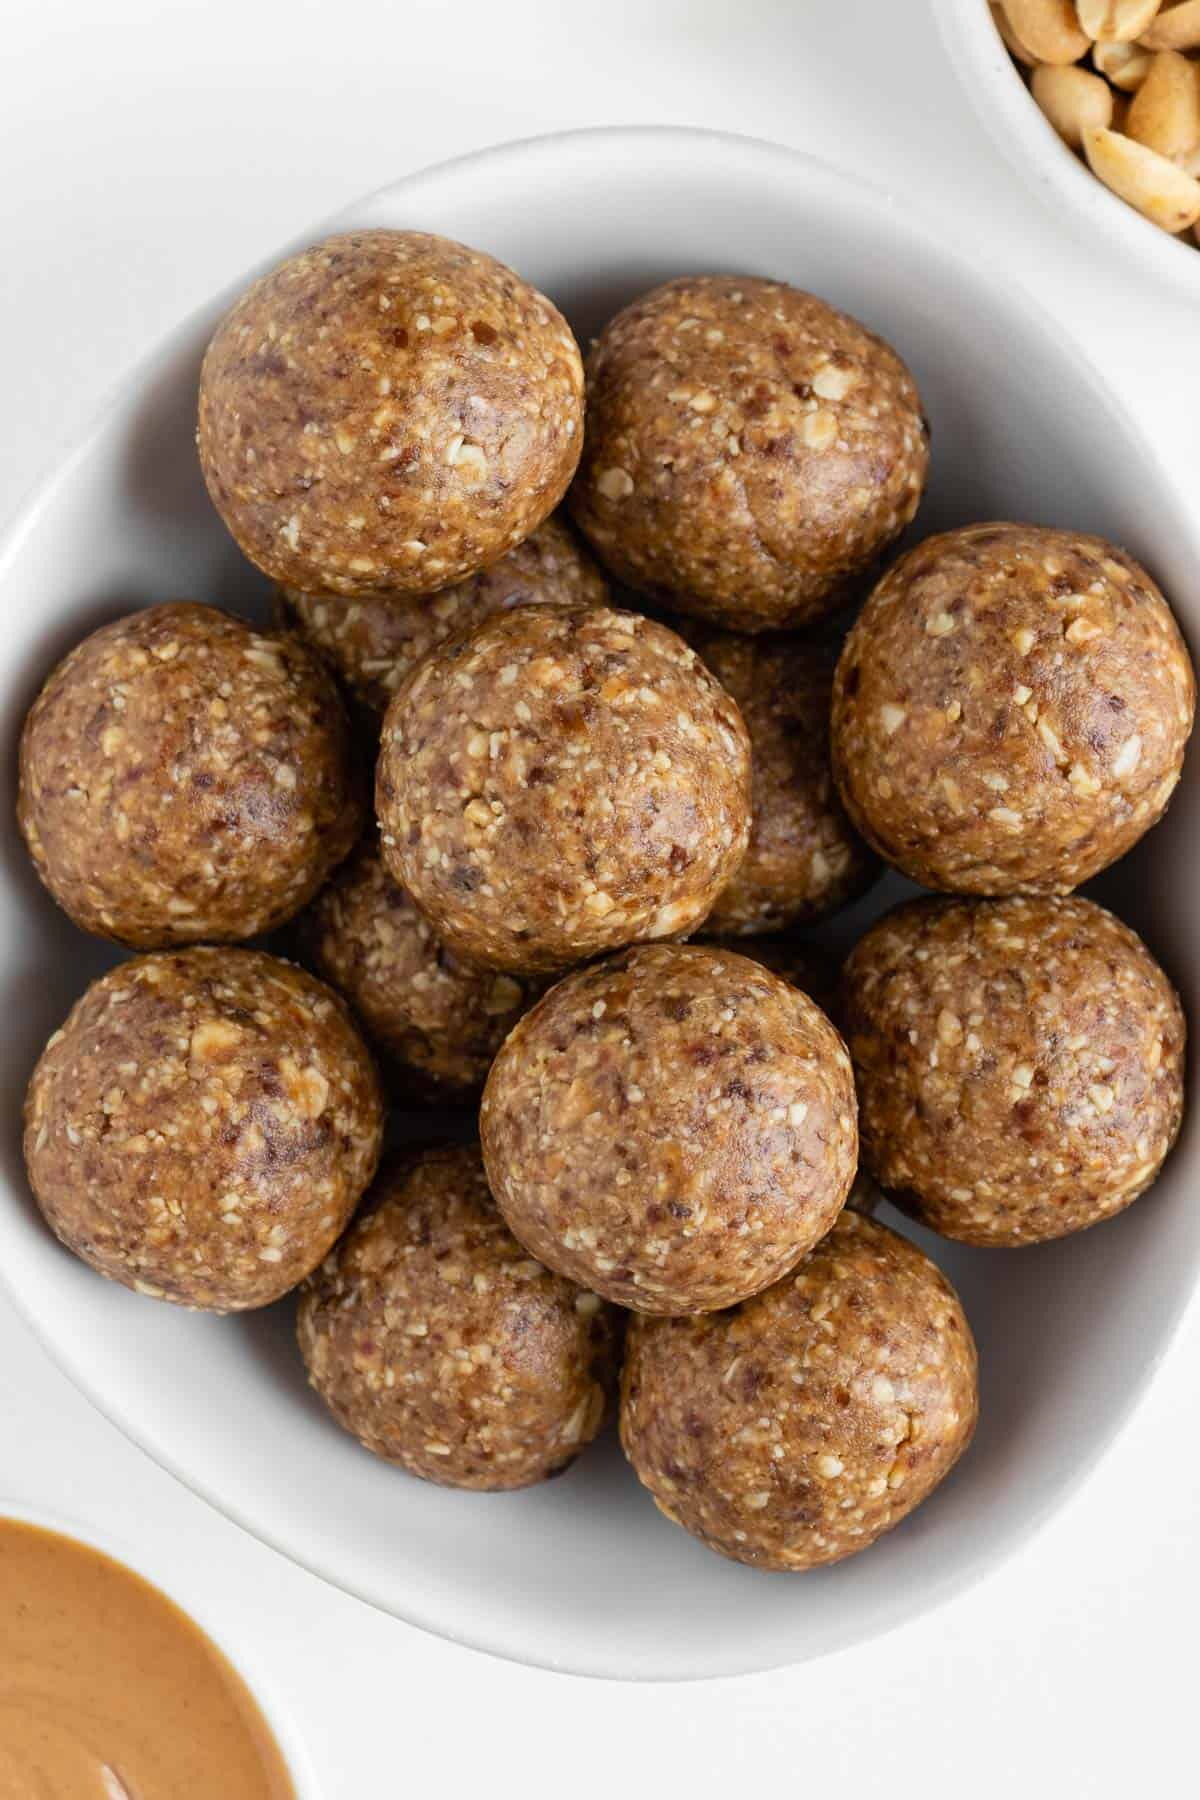 peanut butter energy balls stacked inside a white bowl